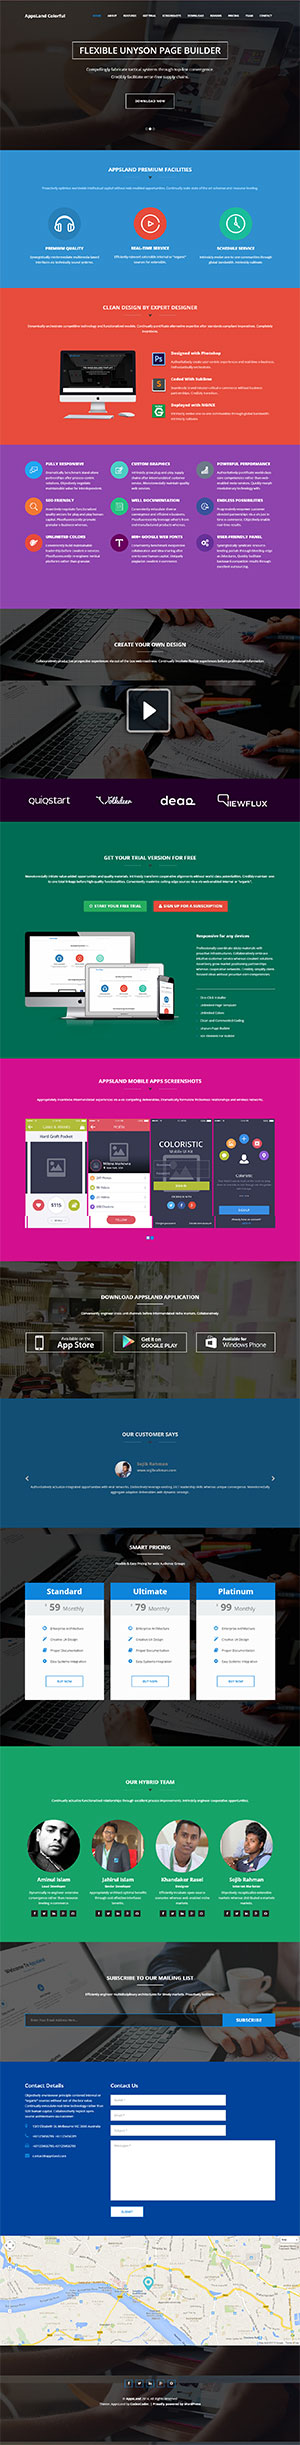 //themes.codexcoder.com/appsland/wp-content/uploads/2015/03/colorful-theme.jpg